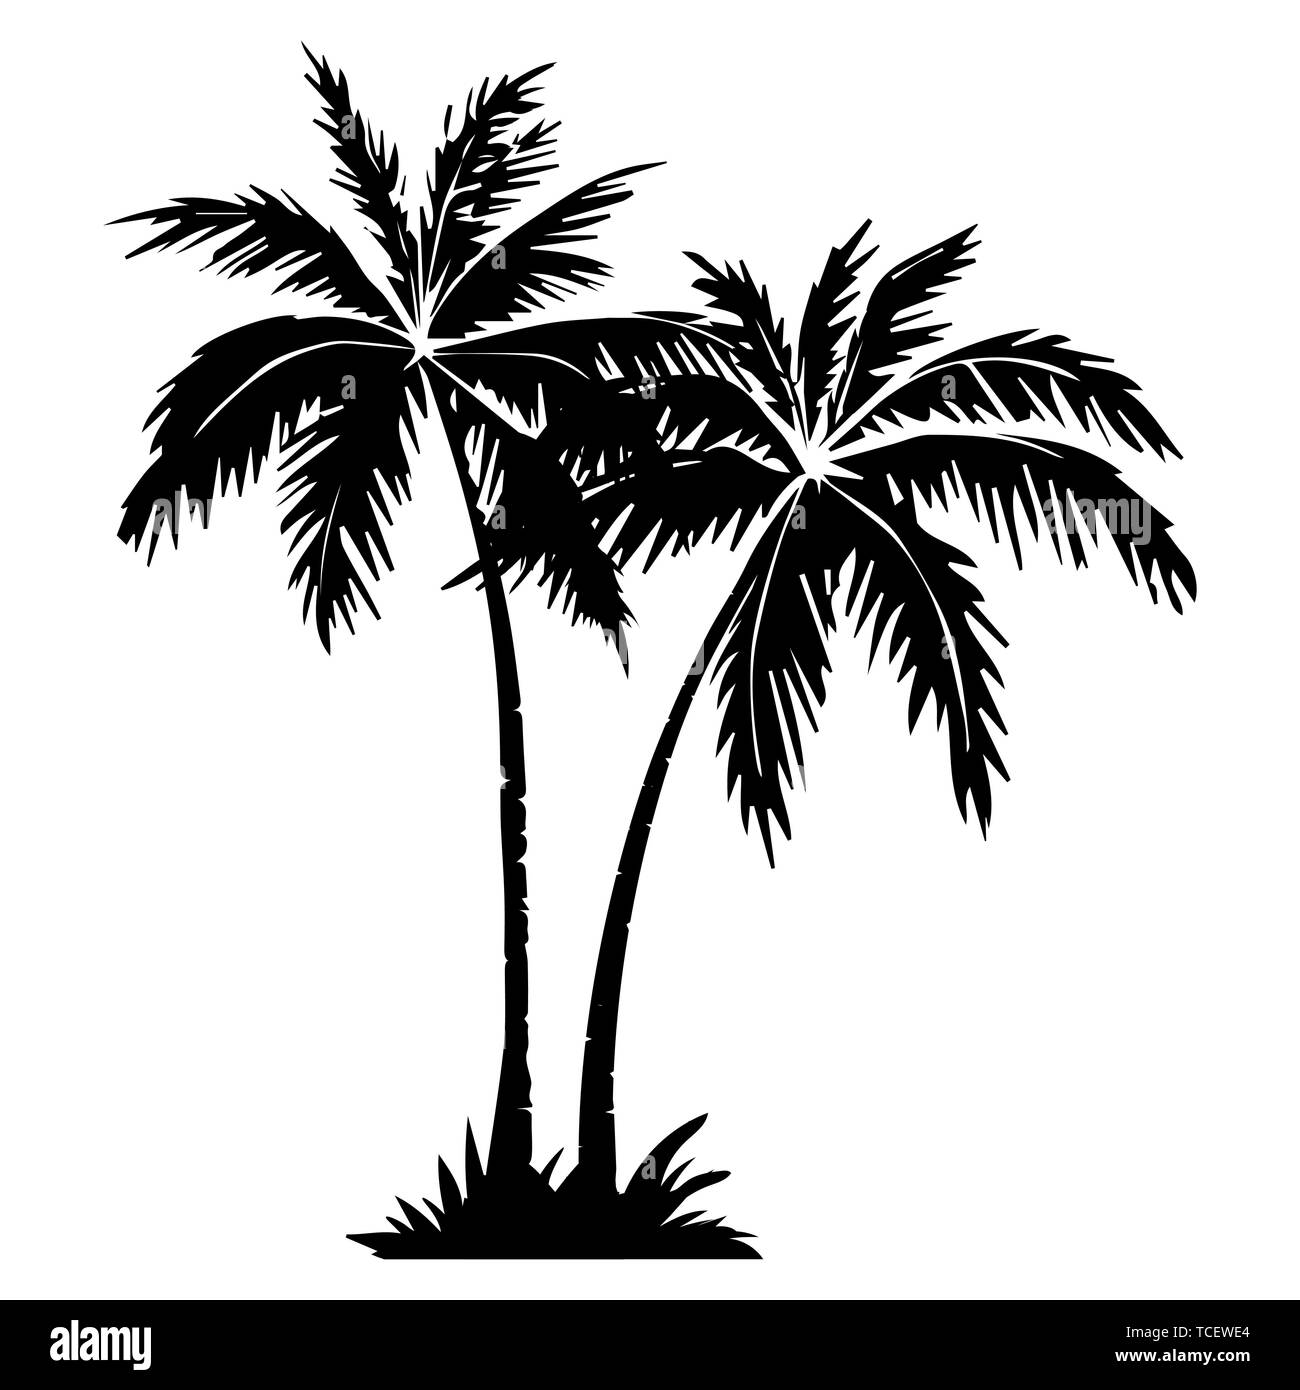 Palm tree silhouette. 2 palm trees isolated on white background. Vector illustration. for print, icon design, web, home decor, fashion, surface, graph - Stock Vector